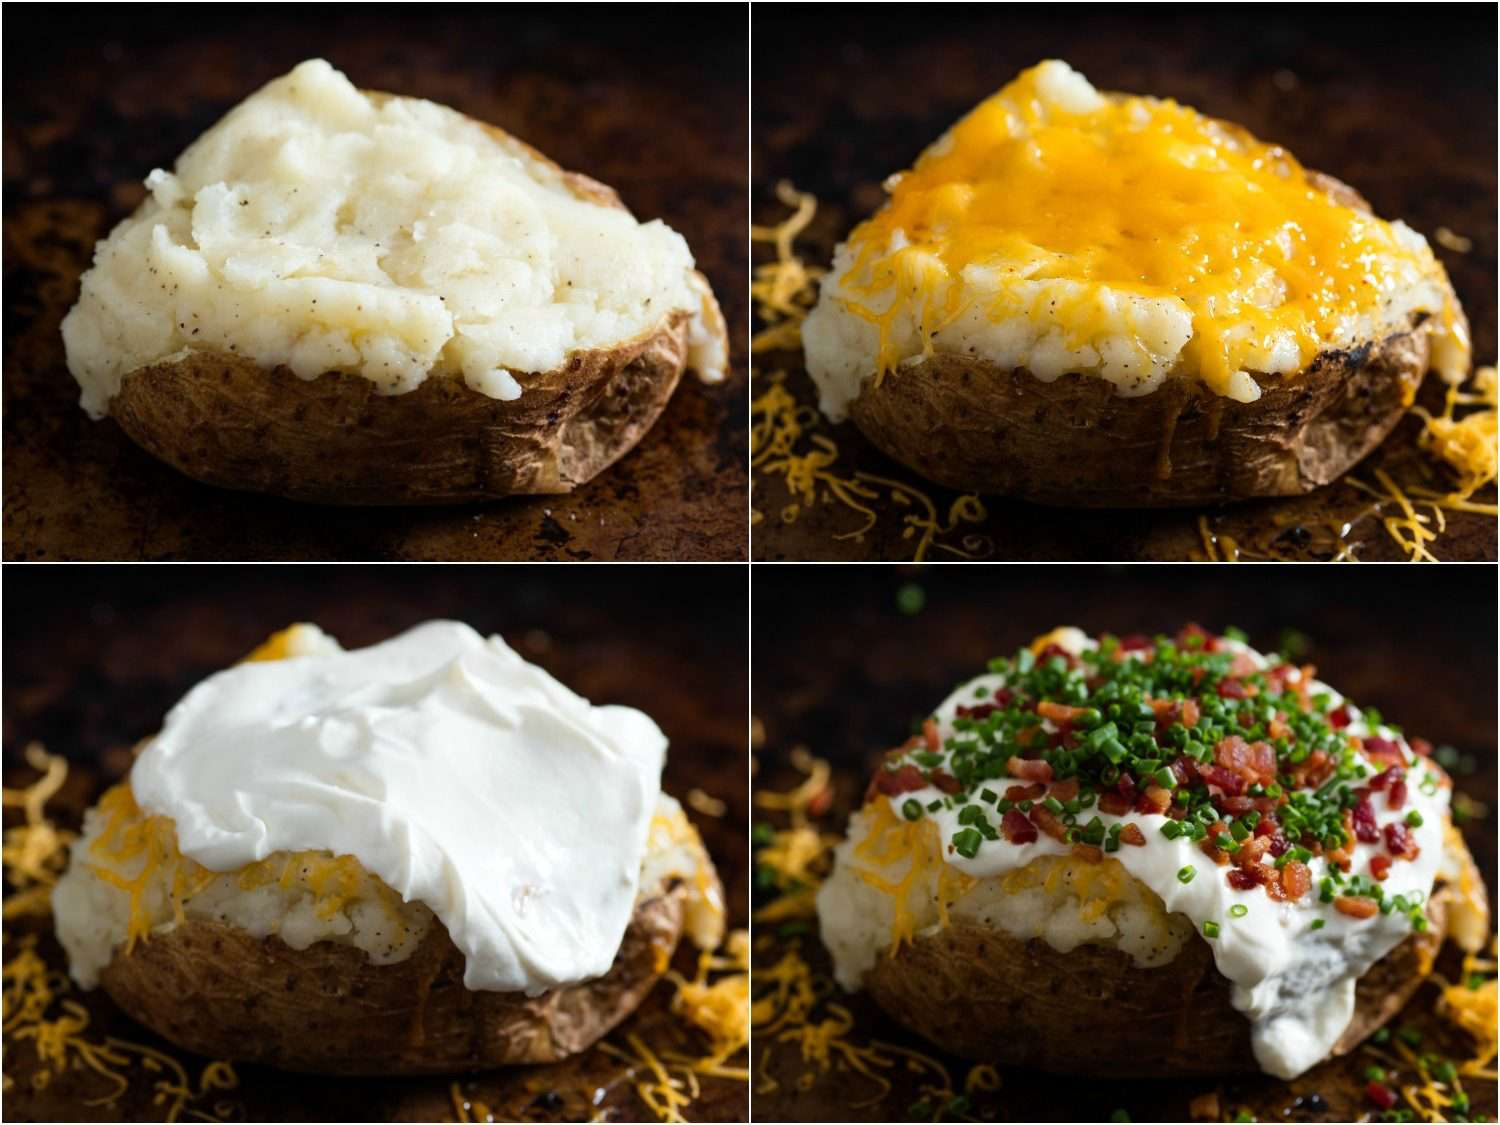 Photo split in four, showing stages of stuffing a baked potato with cheese, sour cream, bacon, and scallions.